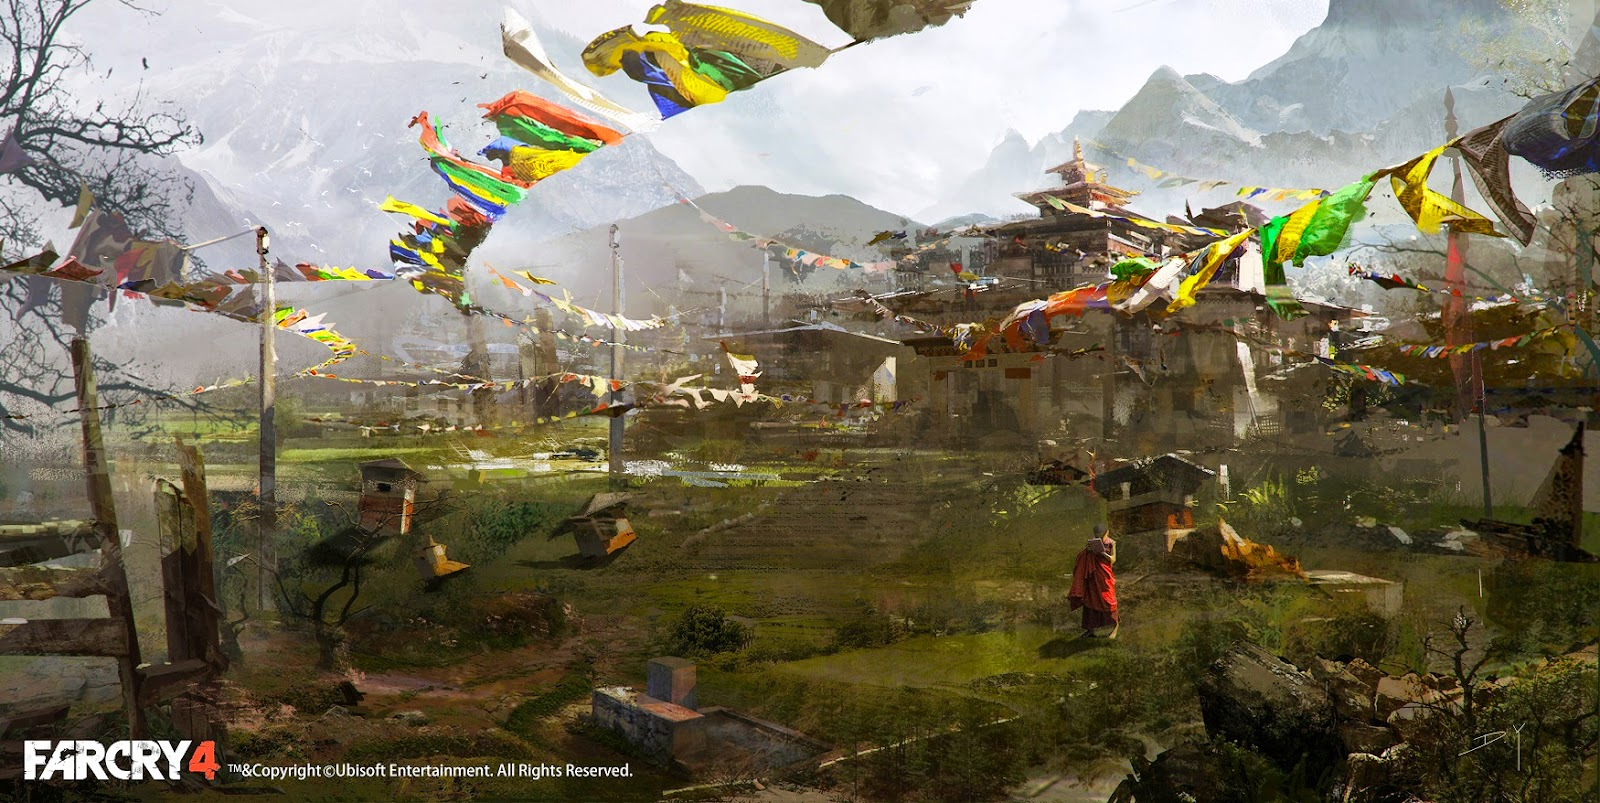 far cry 4 concept art 4